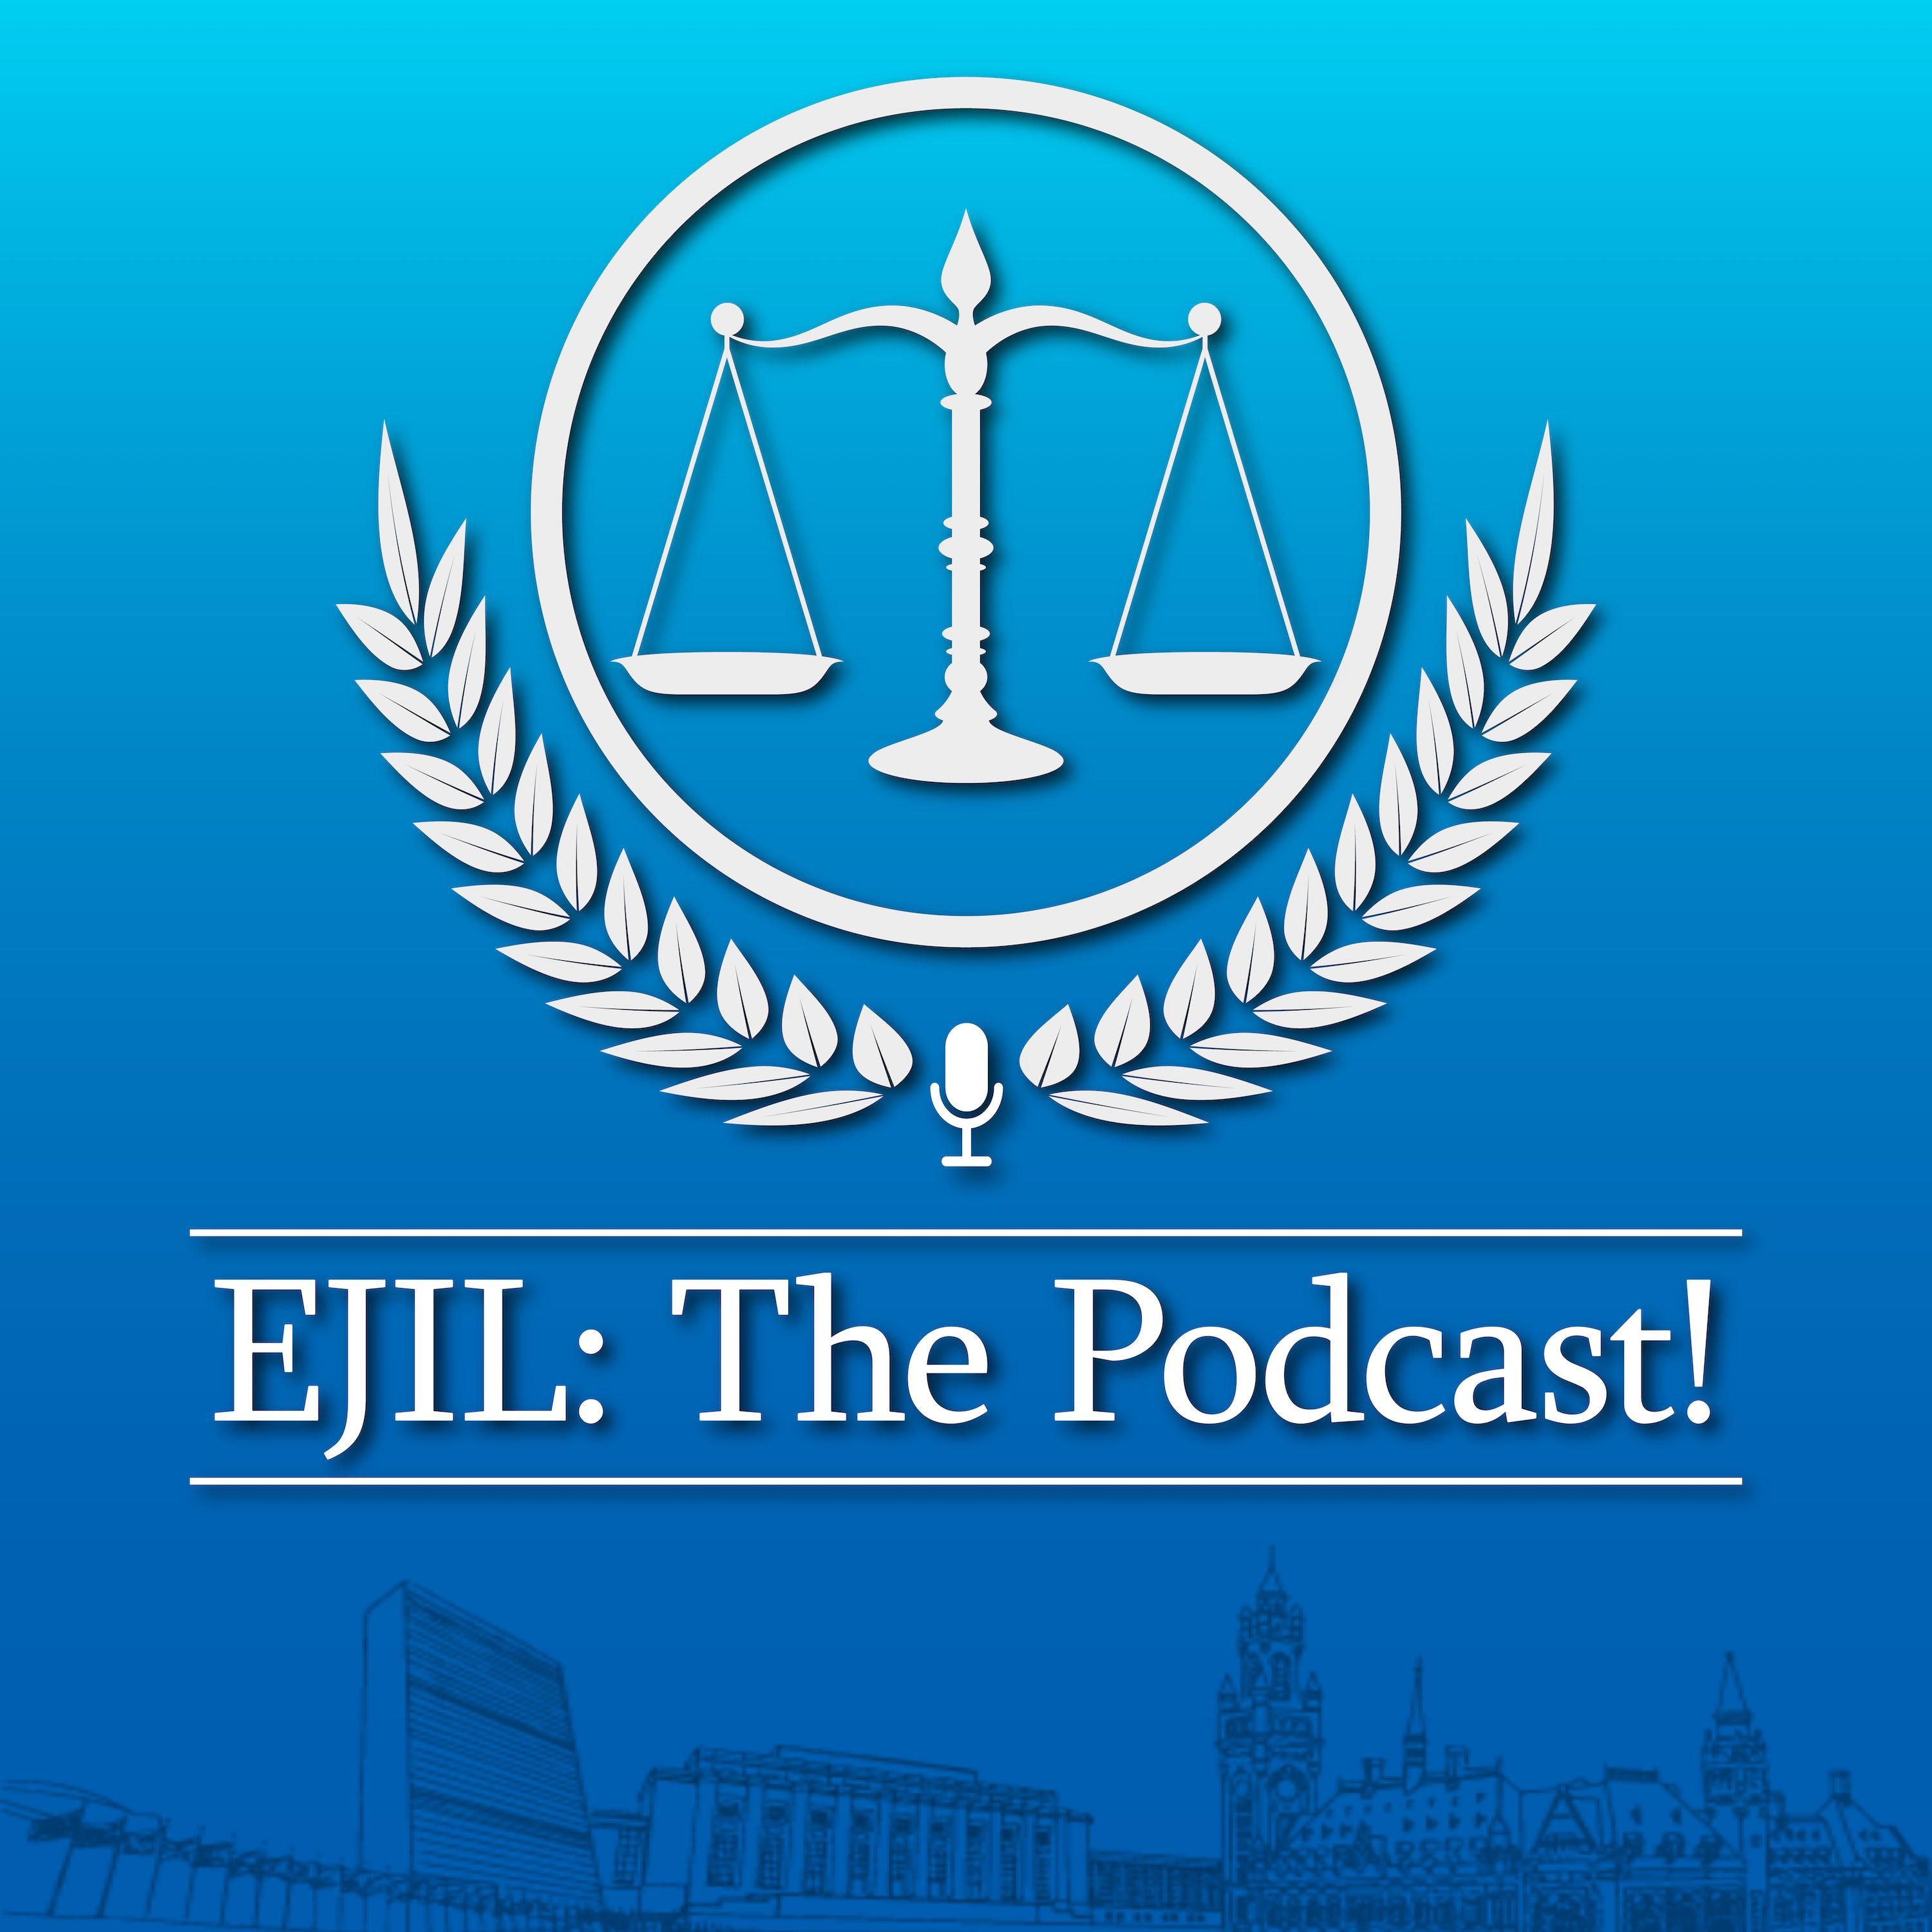 Artwork for podcast EJIL: The Podcast!